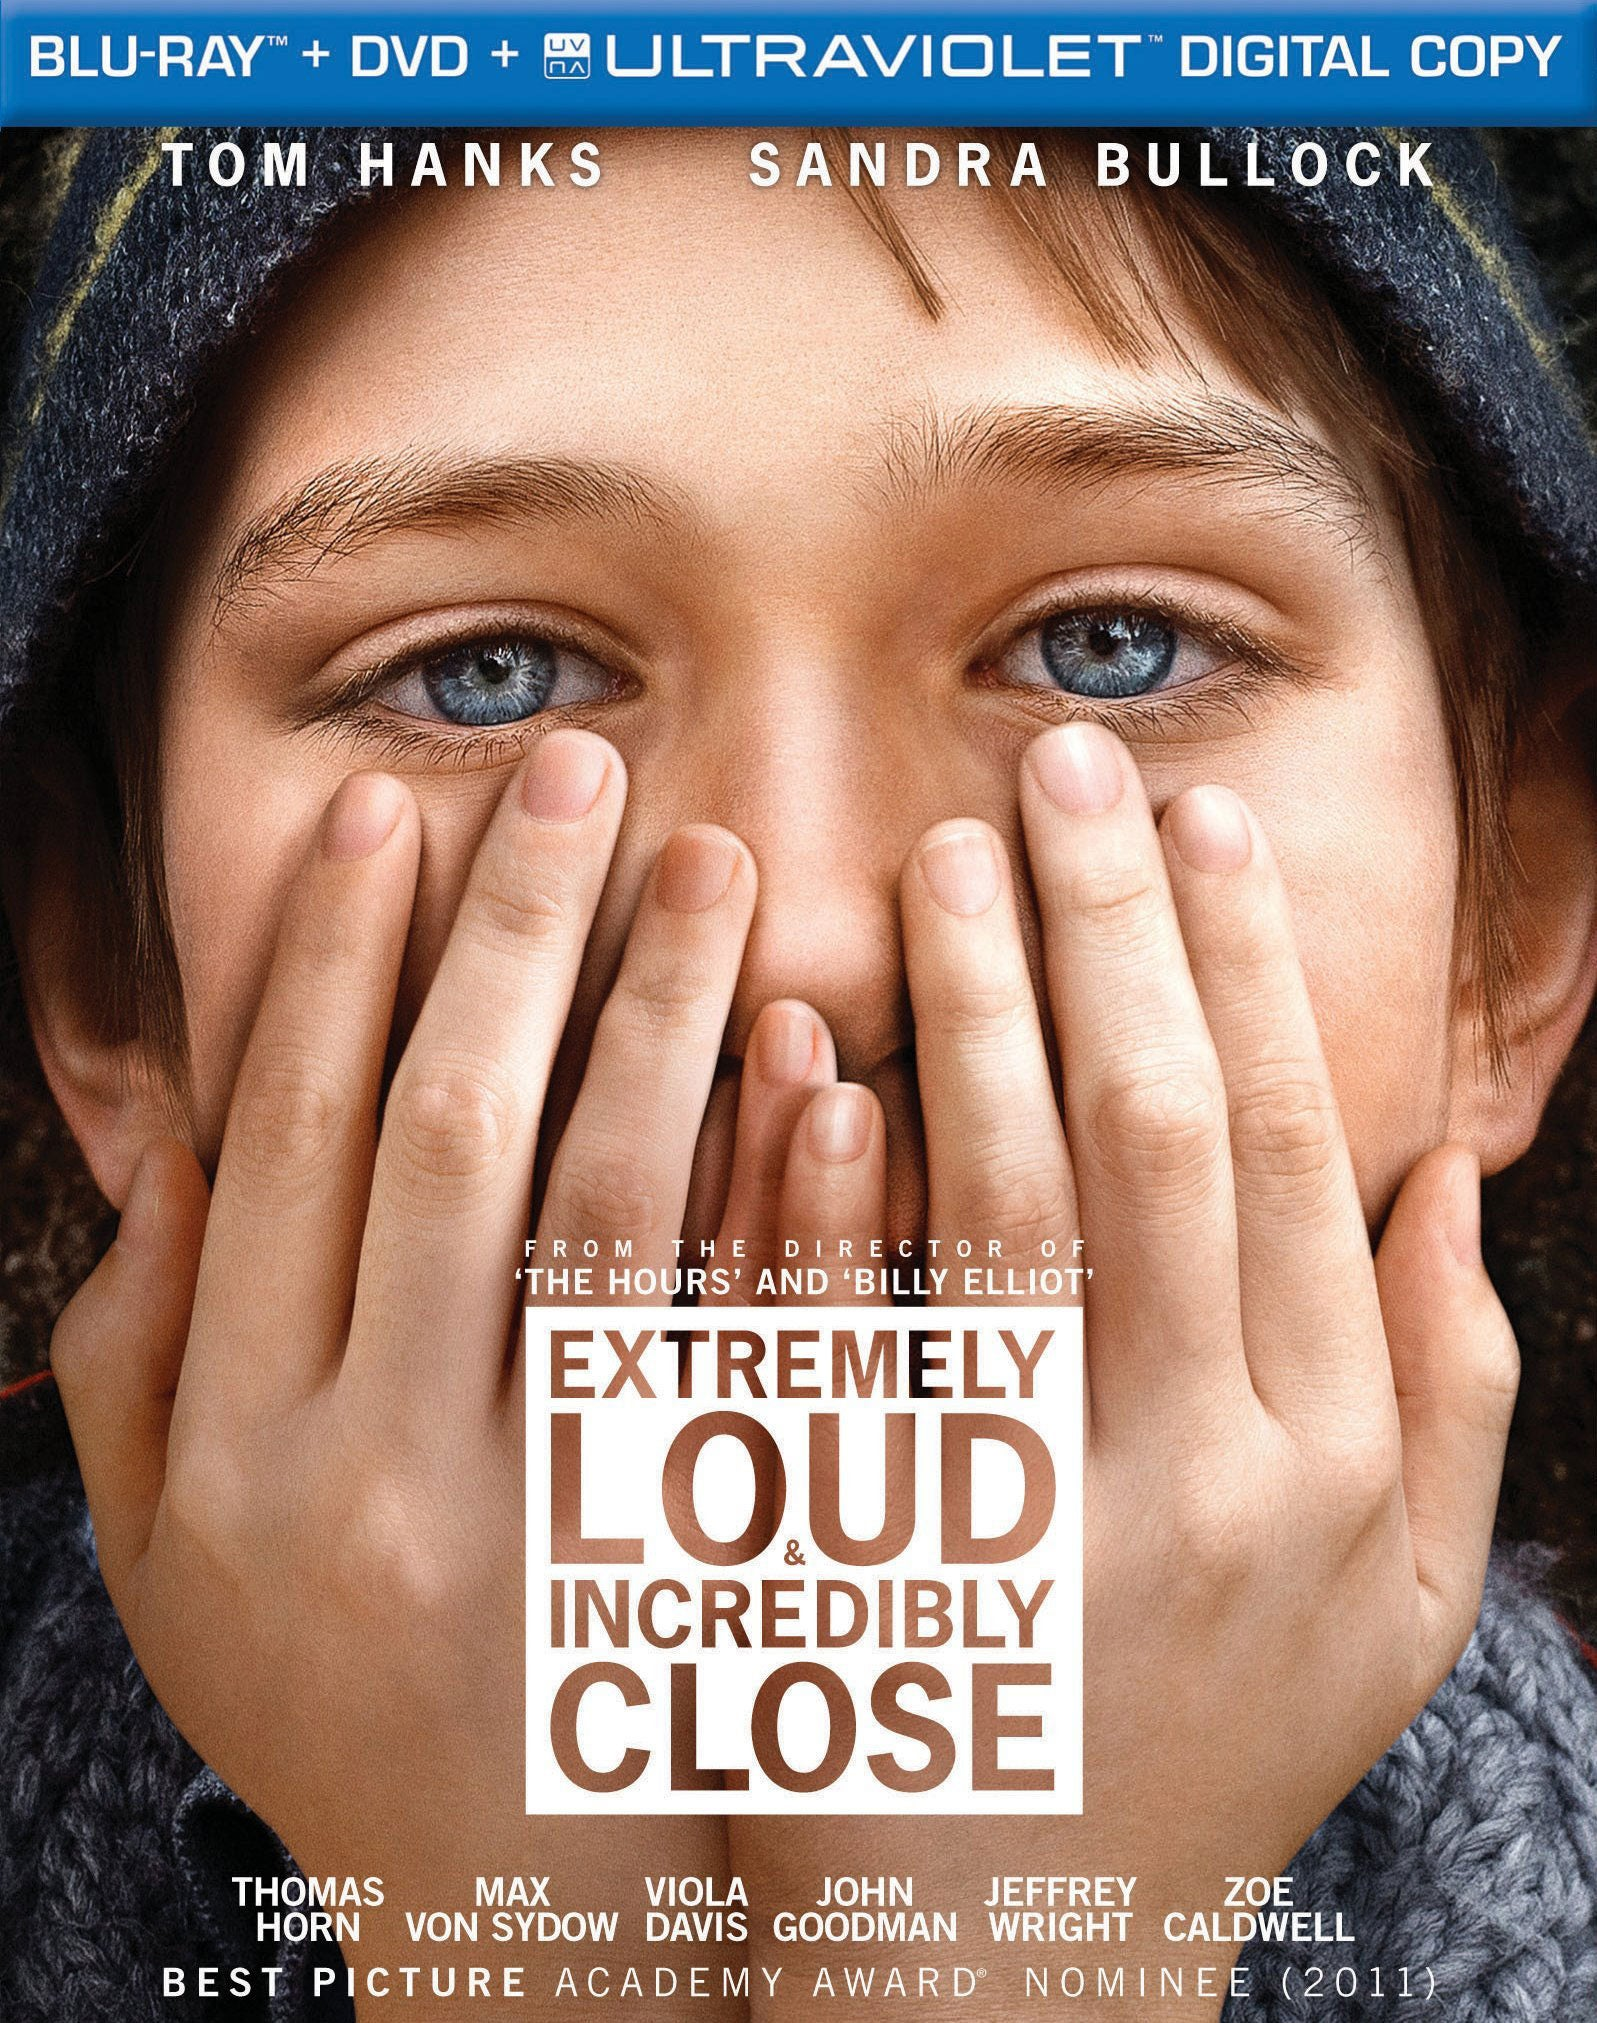 Extremely Loud & Incredibly Close (Blu-ray/DVD)